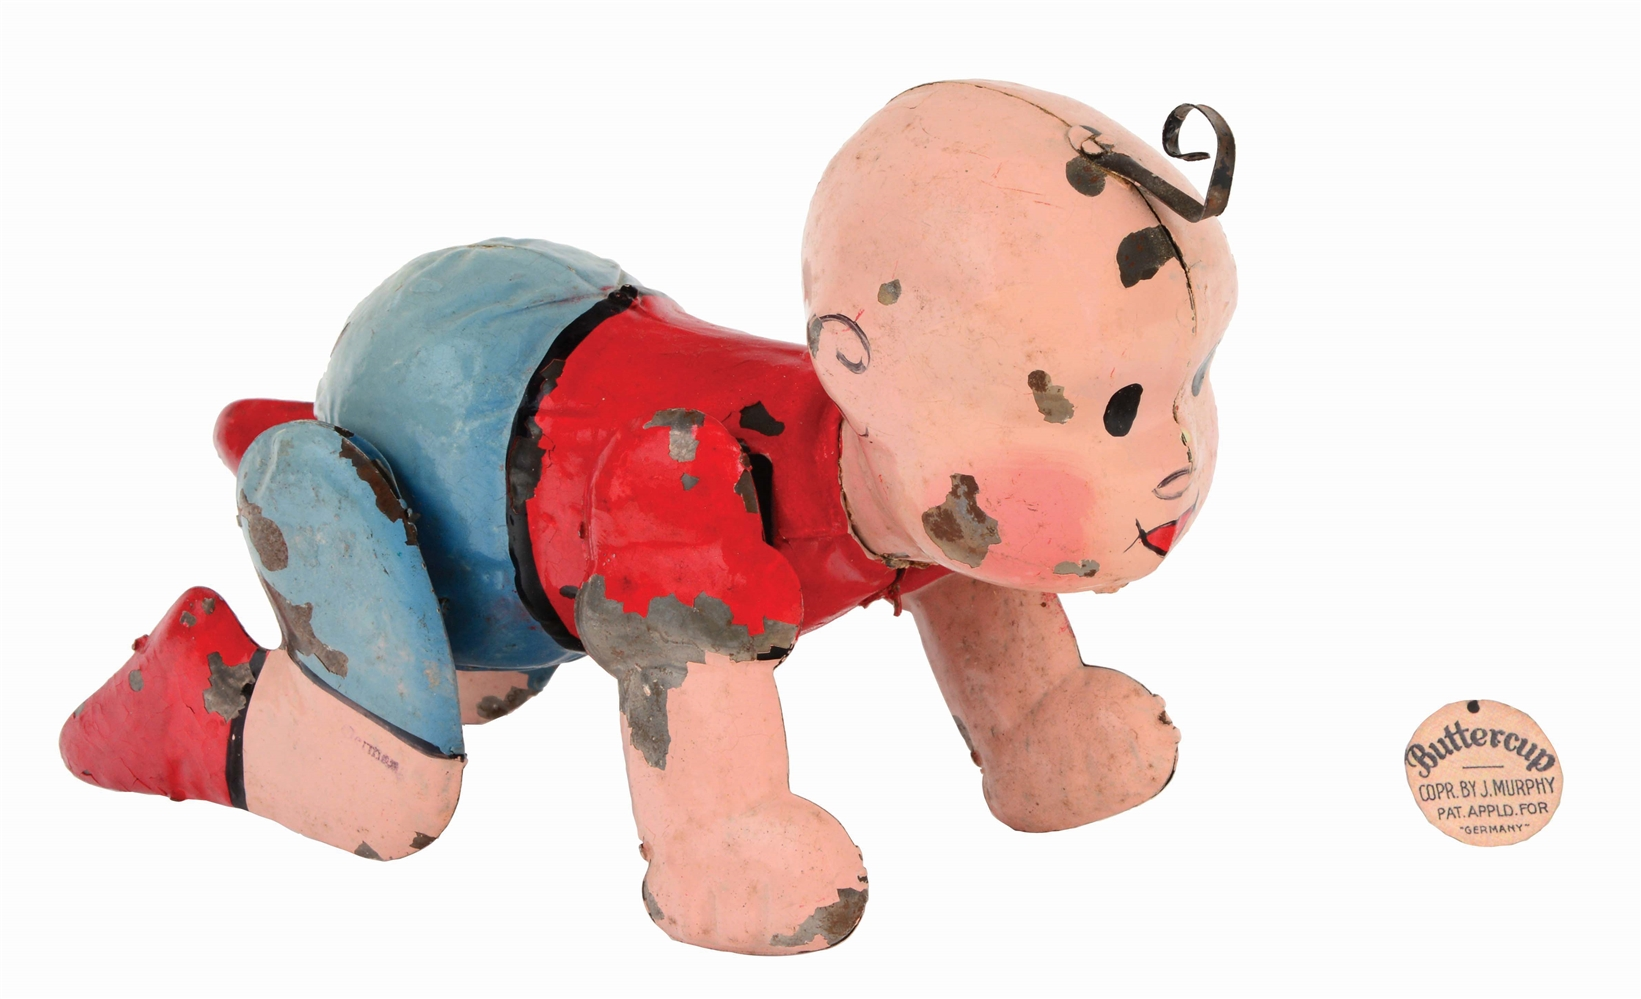 GERMAN HAND-PAINTED WIND-UP BUTTERCUP COMIC WALKING TOY.